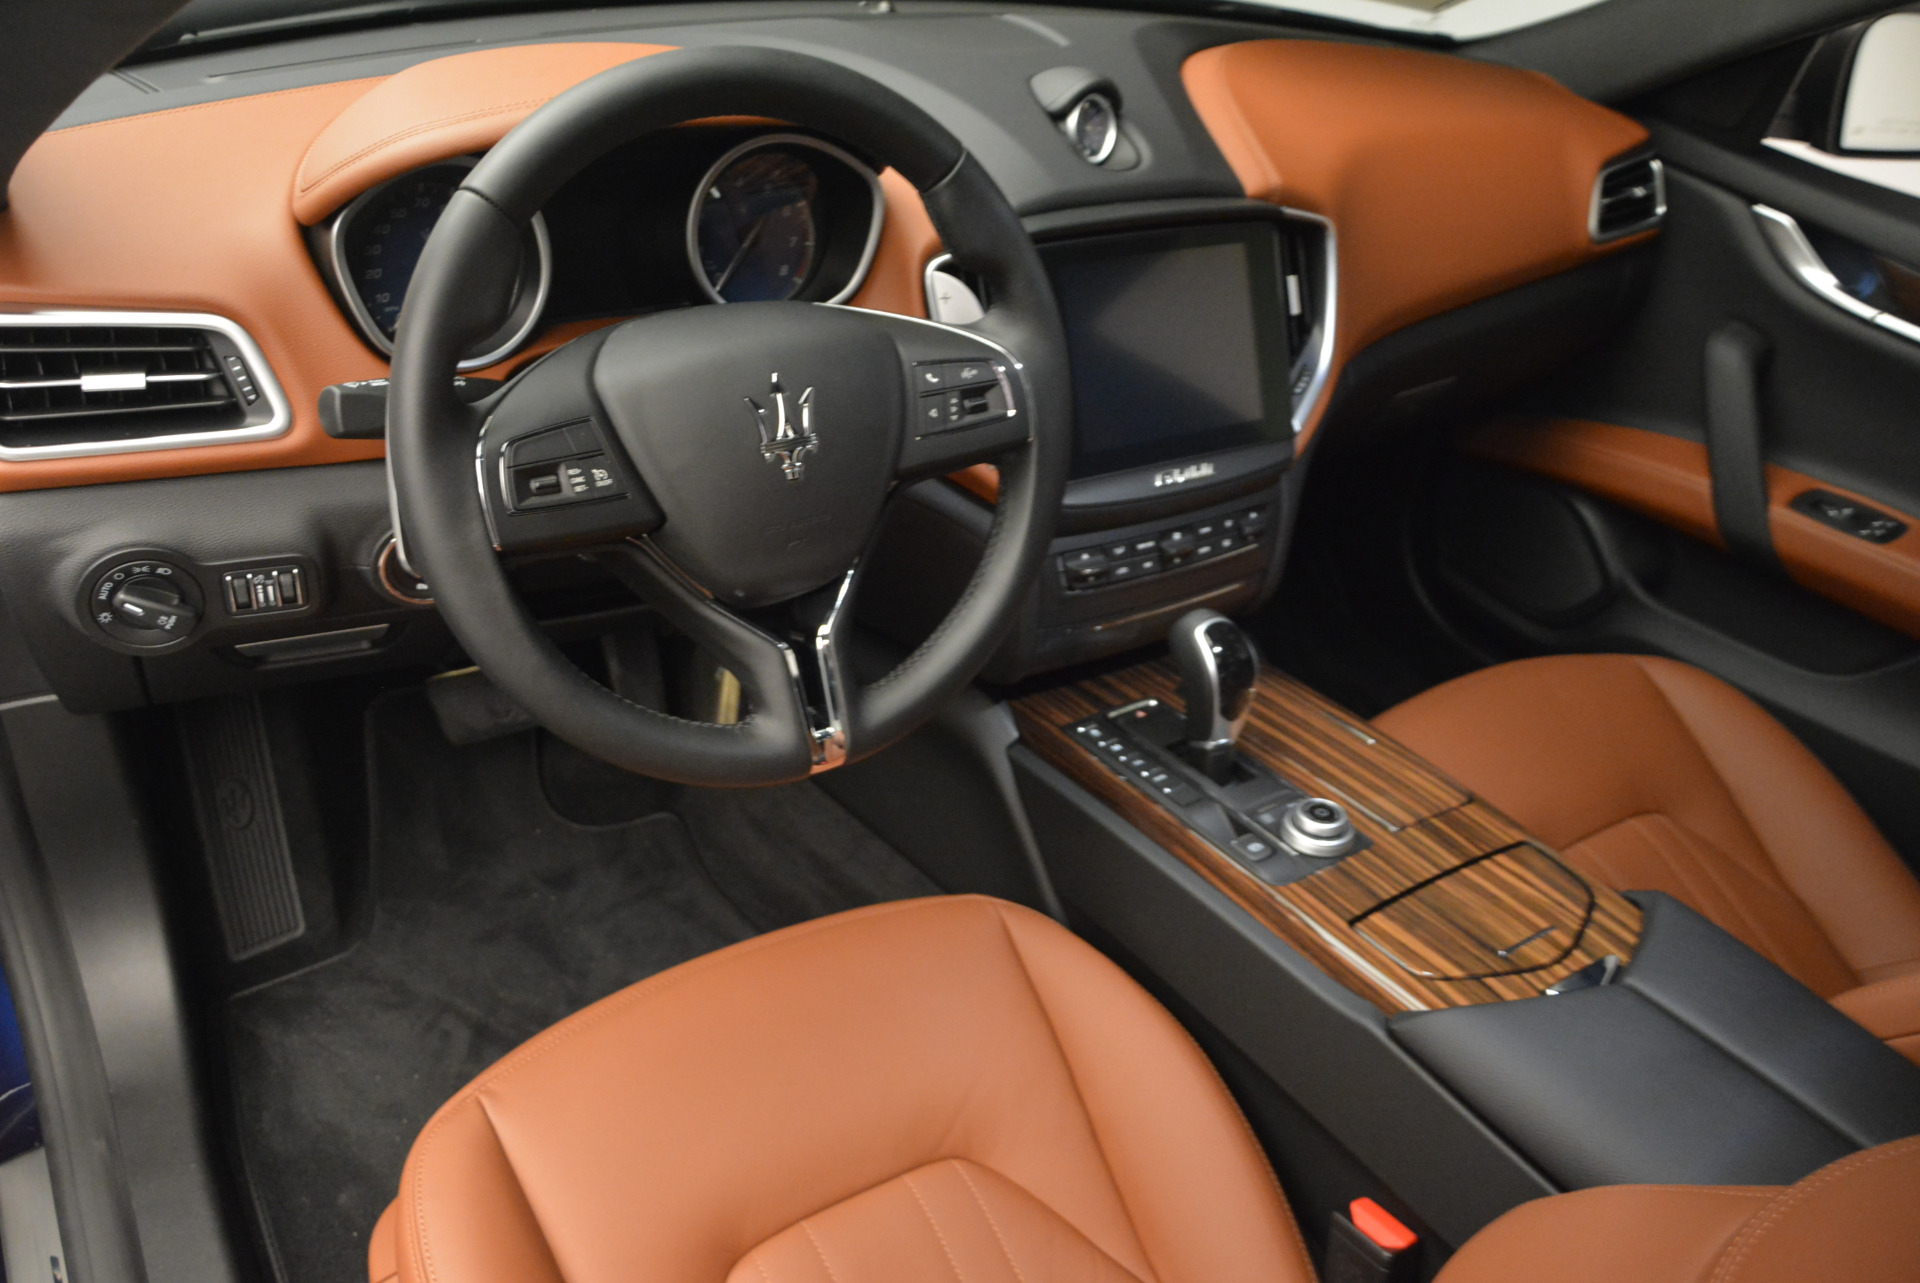 Used 2017 Maserati Ghibli S Q4 - EX Loaner For Sale In Westport, CT 568_p13